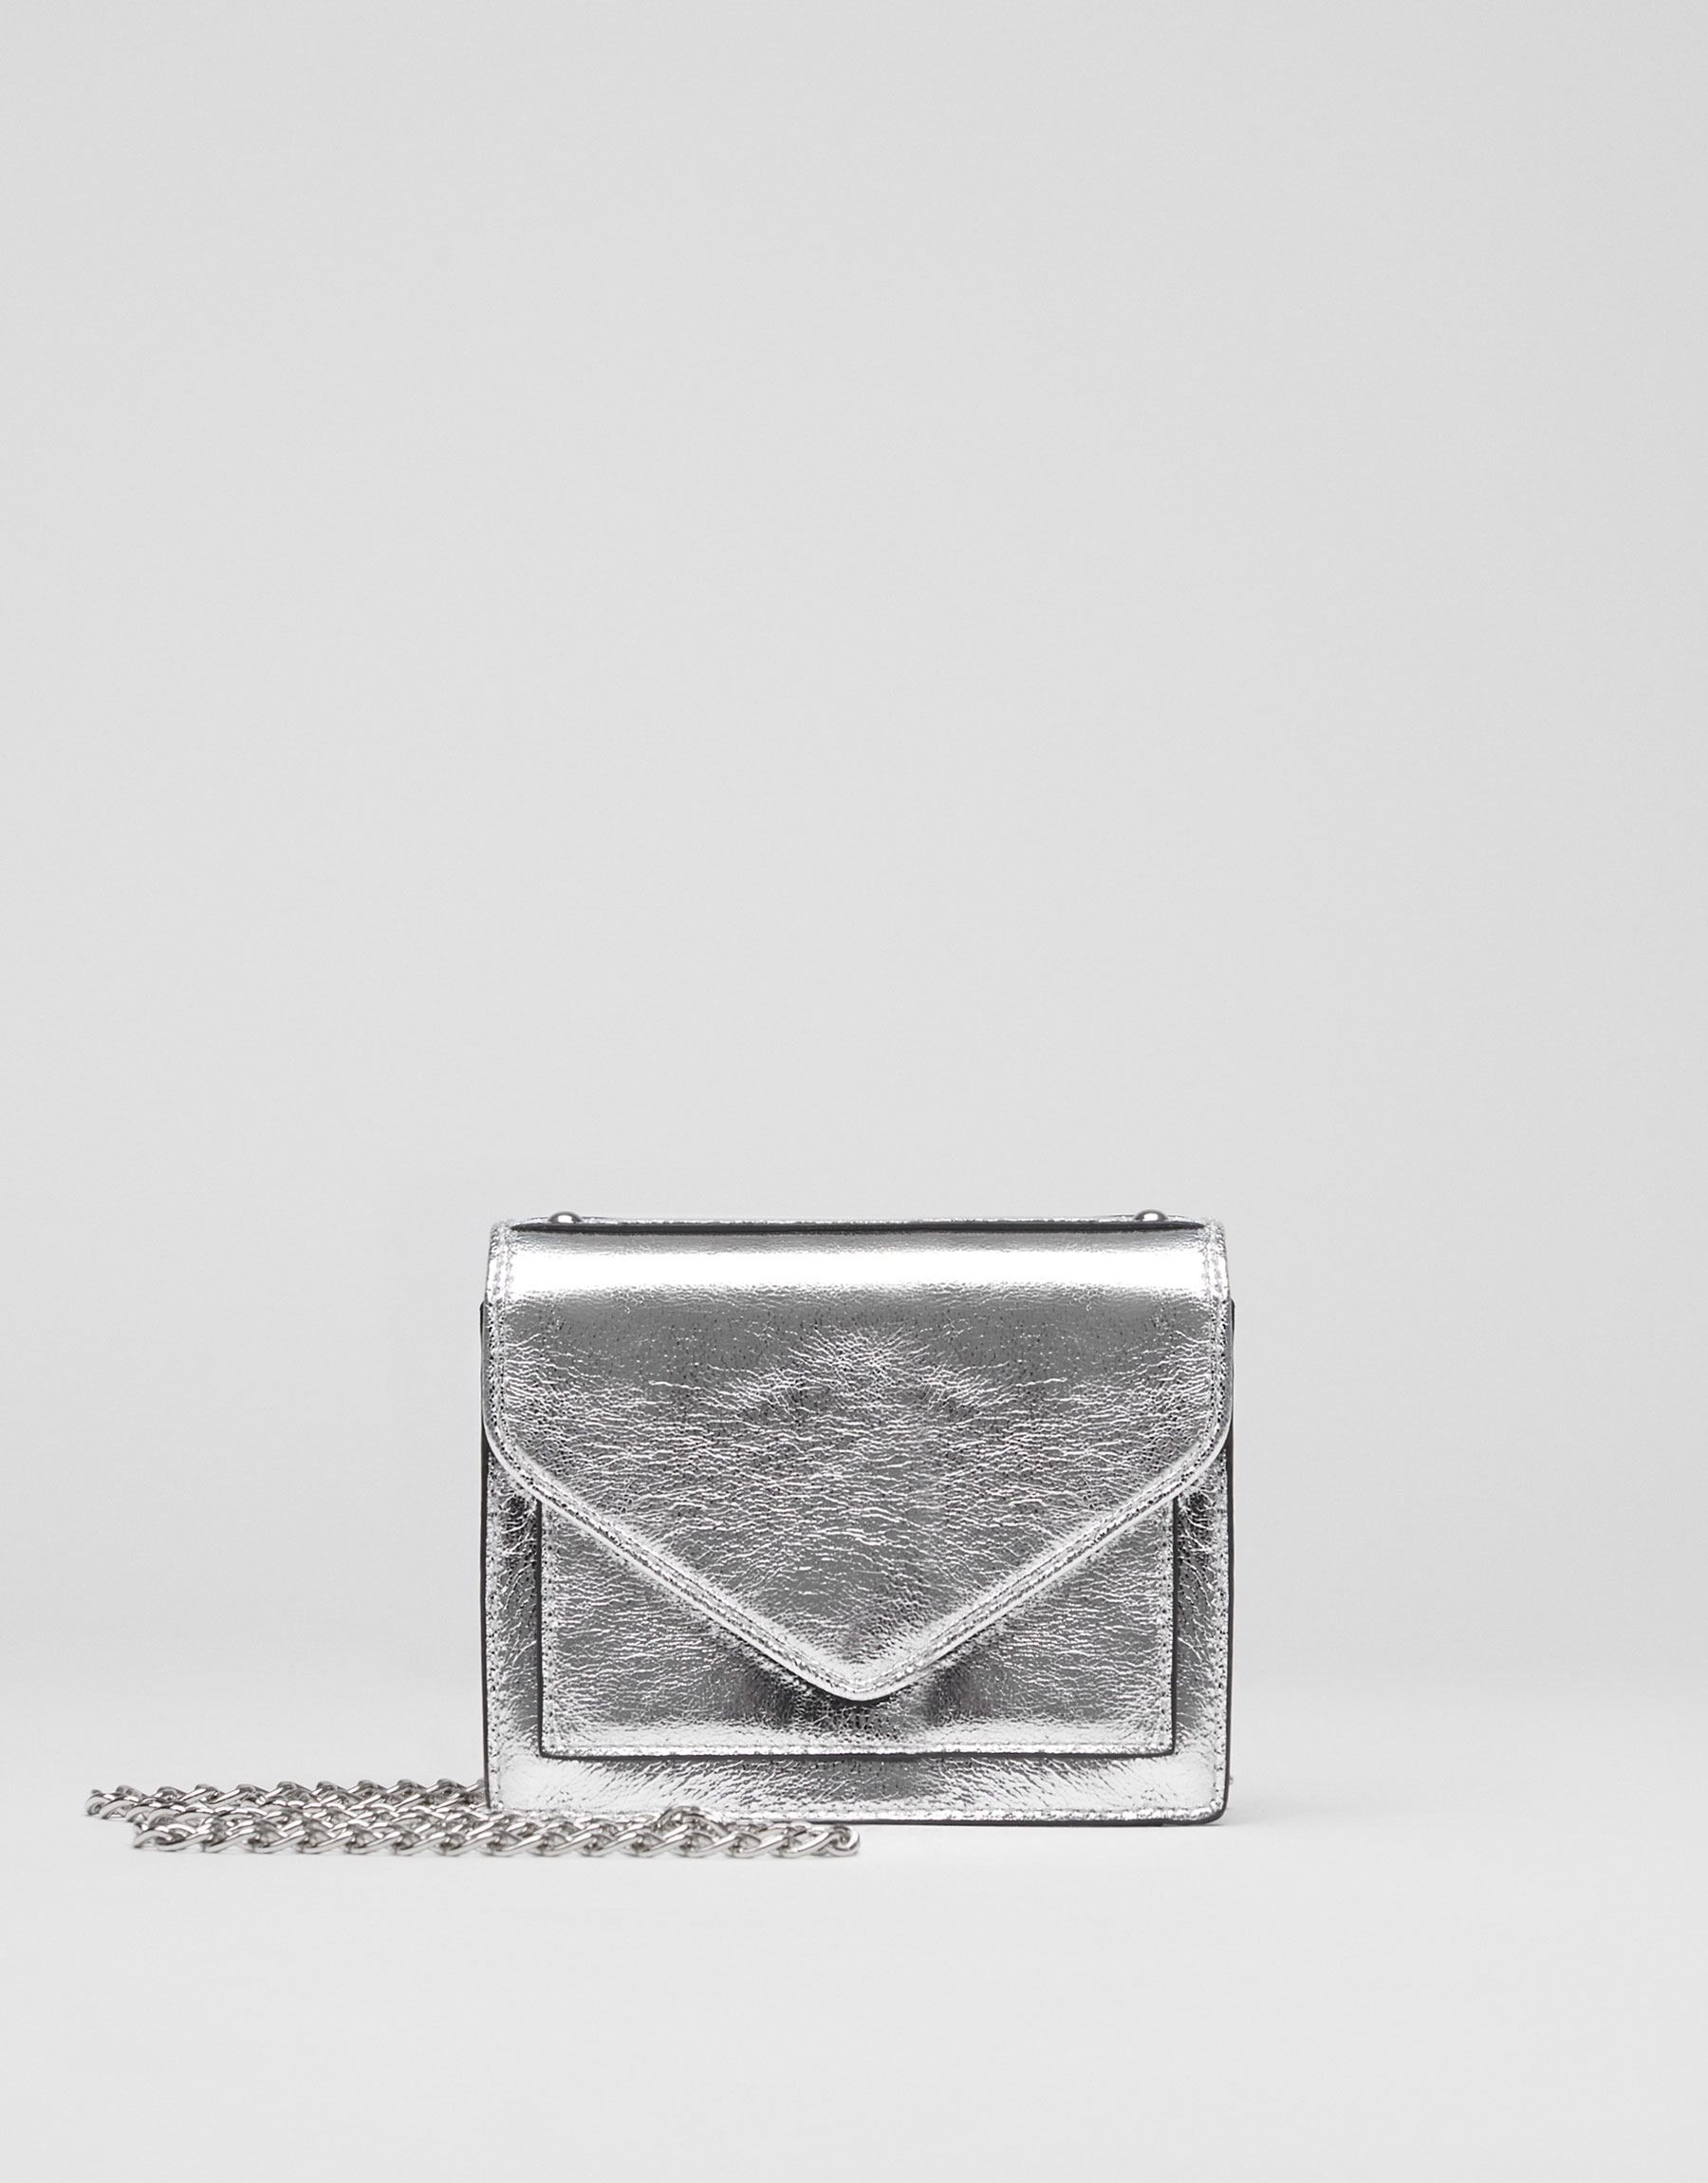 Mini silver evening crossbody bag